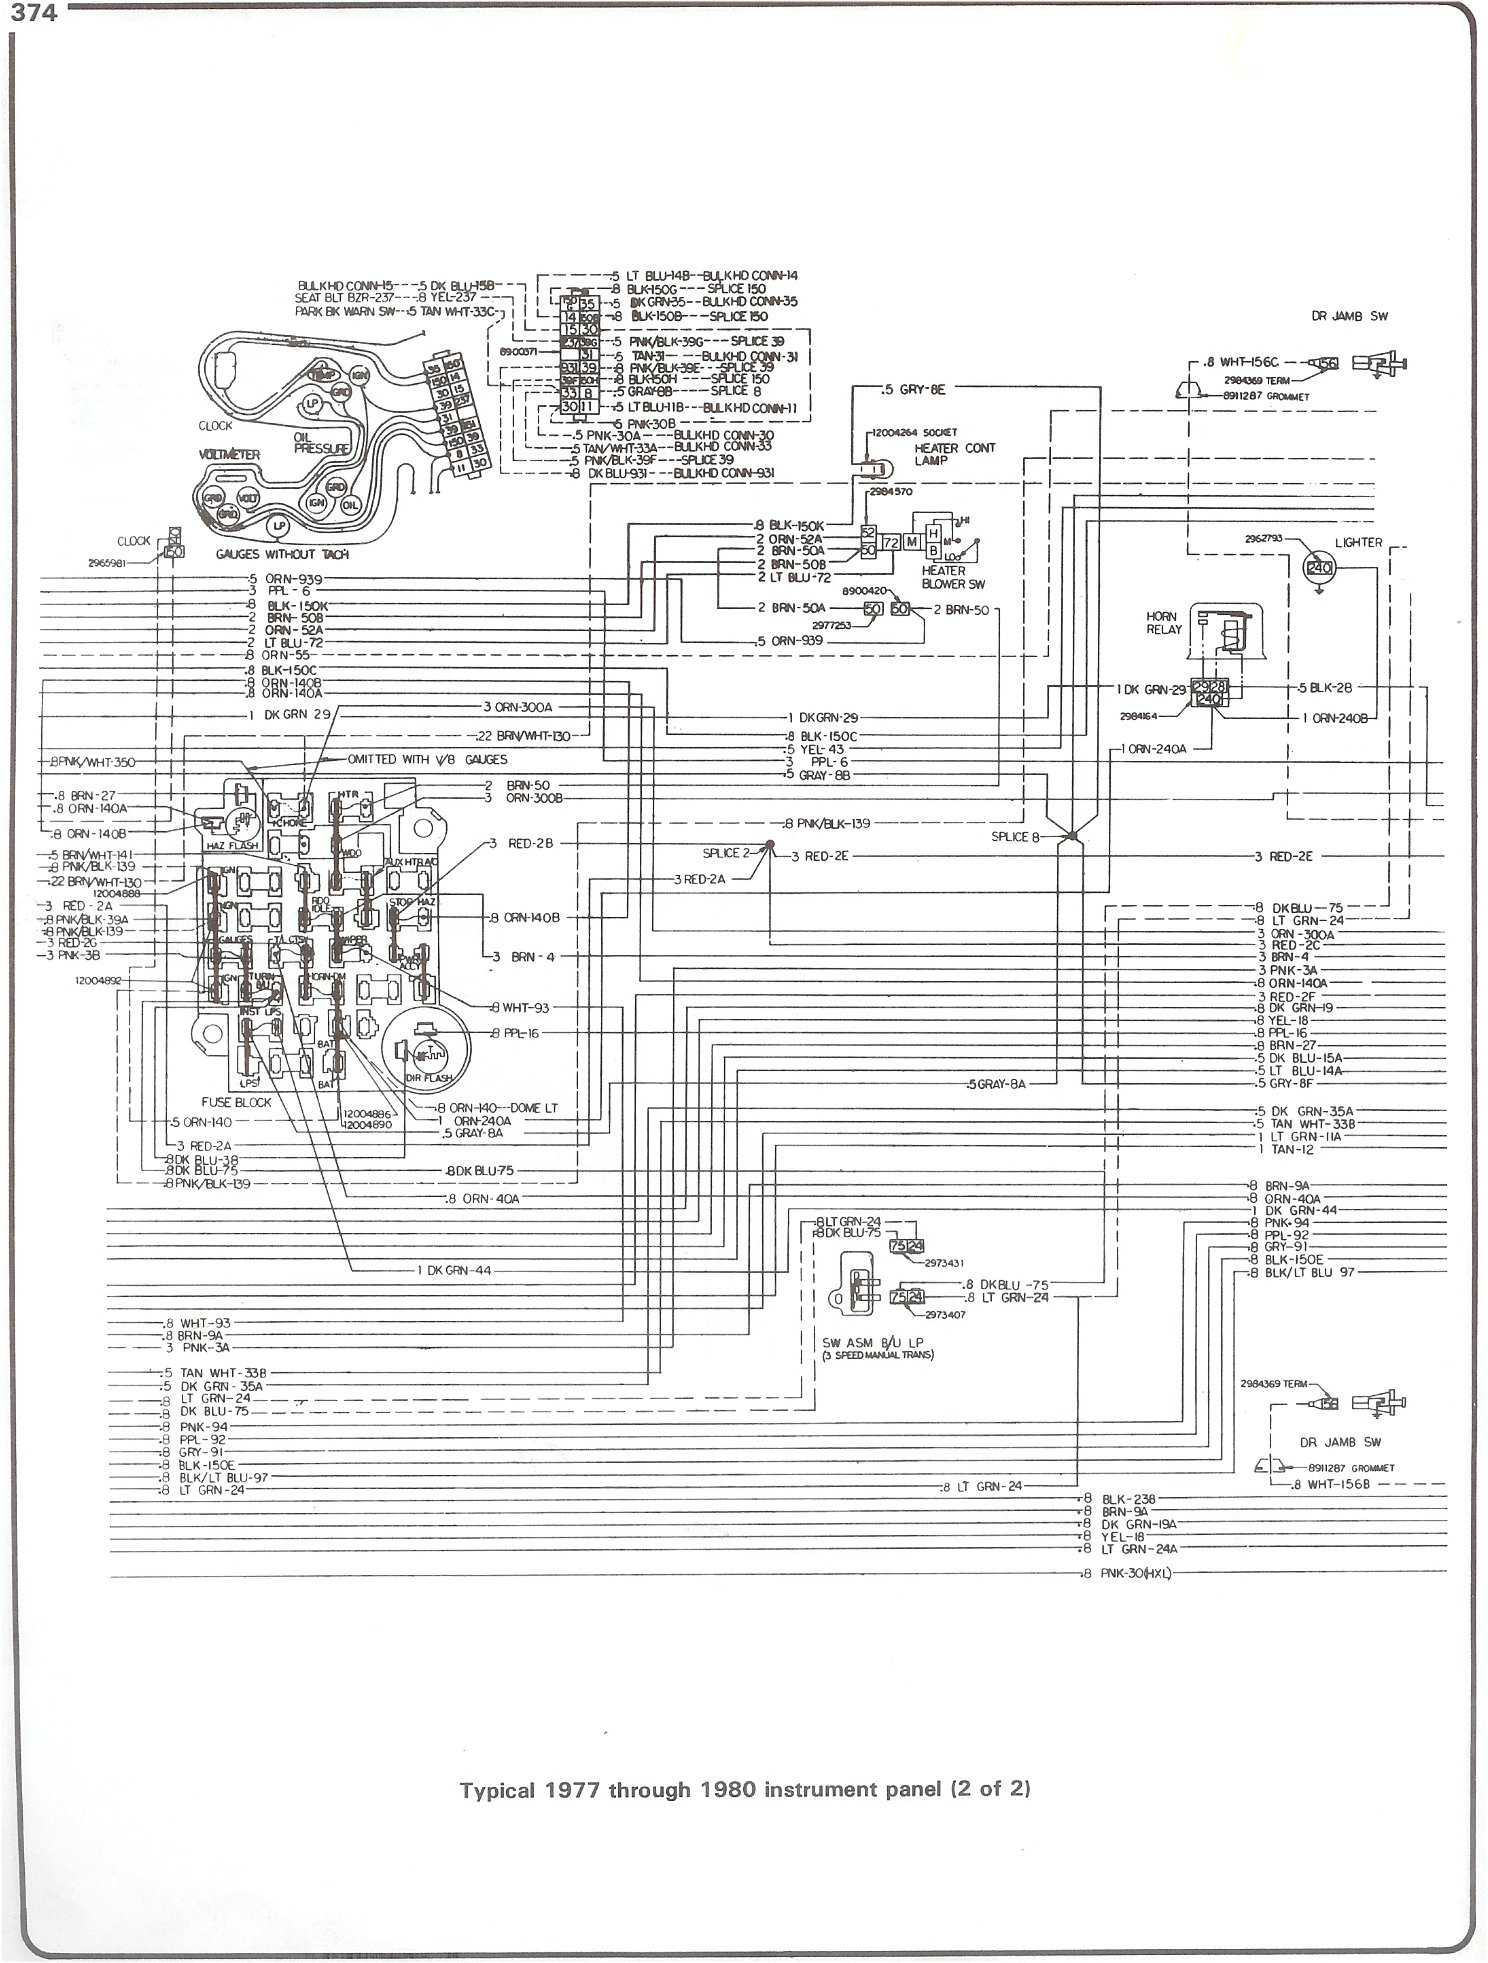 1984 Chevy Truck Wiring Diagrams About Wiring Diagram Chevy 454 Engine  Cooling System Chevy 454 Parts Diagram